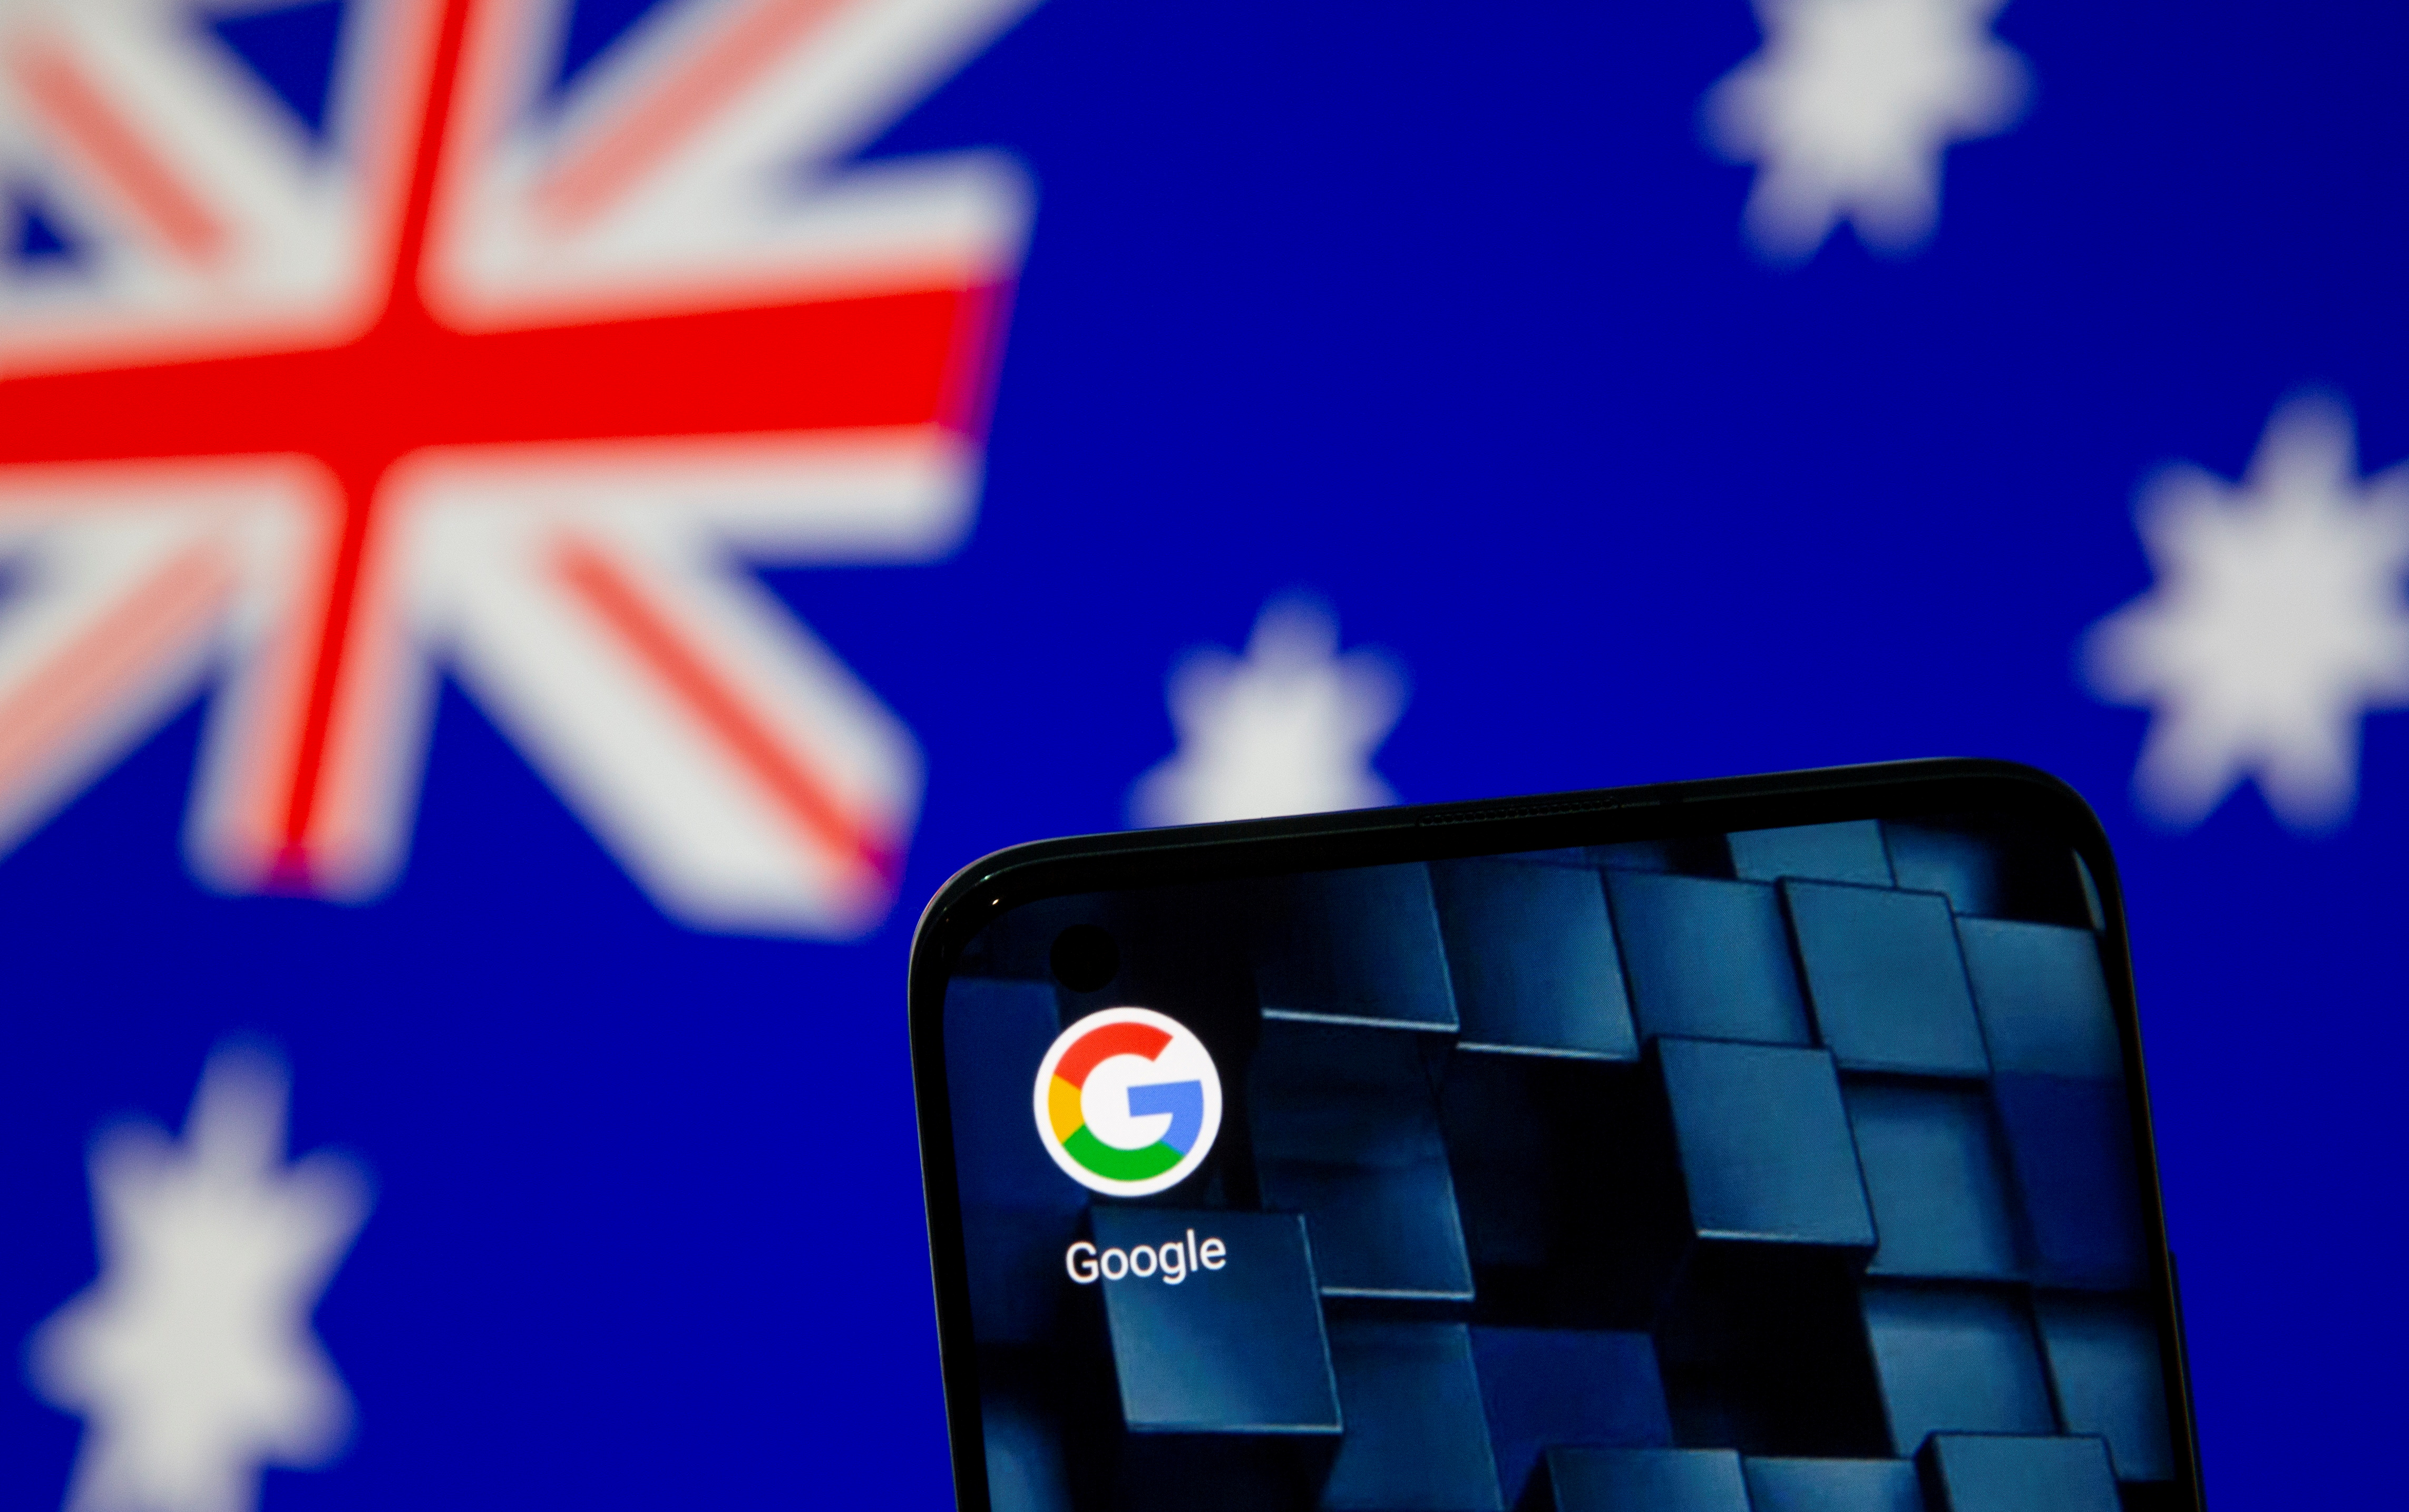 Smartphone with Google app icon is seen in front of the Australian flag in this illustration taken January 22, 2021. REUTERS/Dado Ruvic/Illustration/File Photo